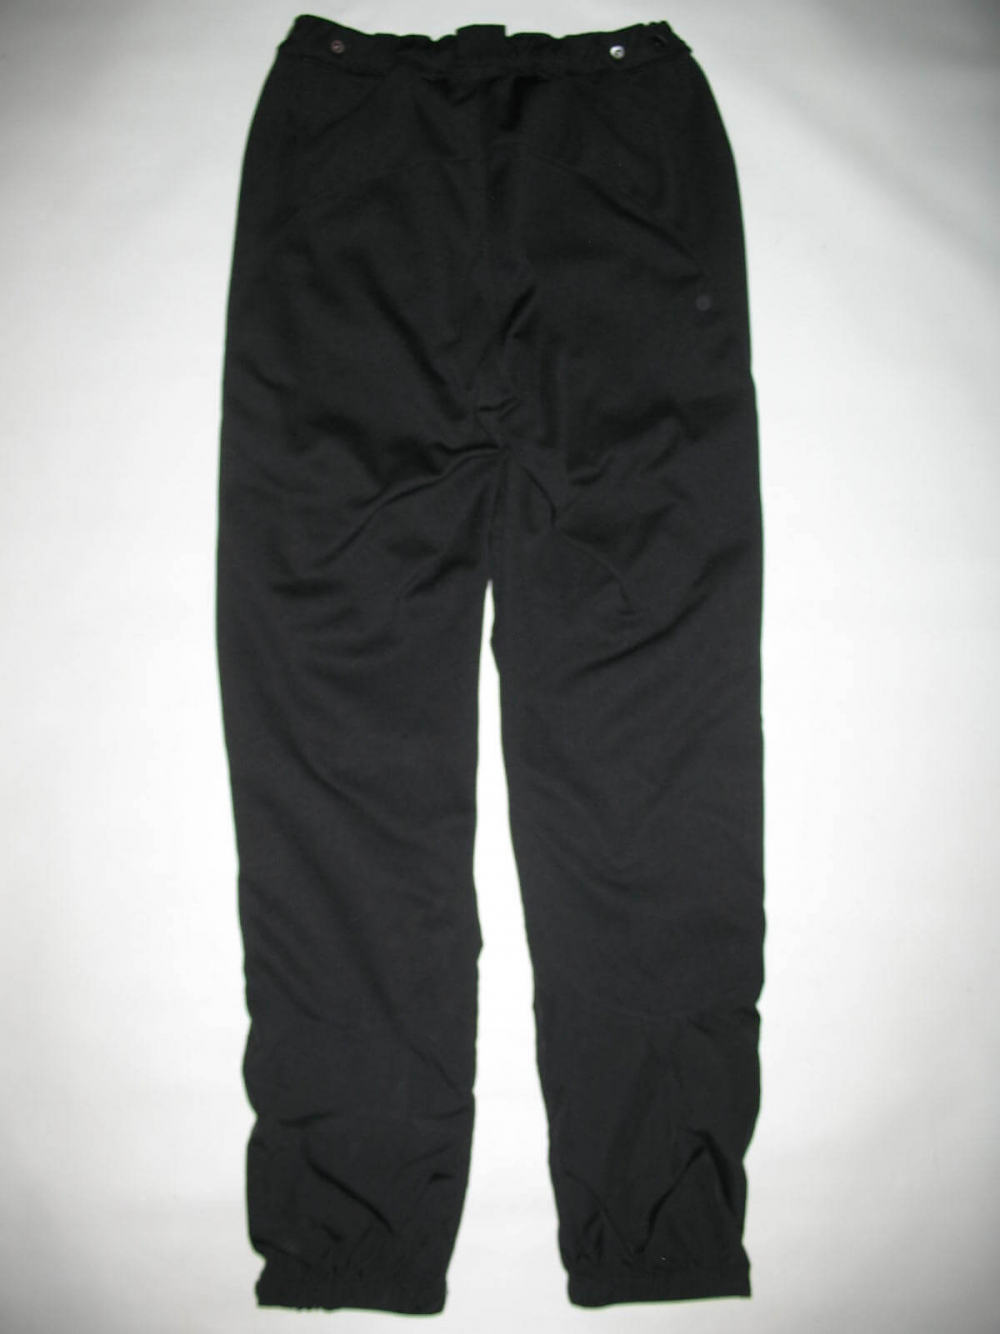 Брюки CRAFT hypervent pants (размер М) - 1